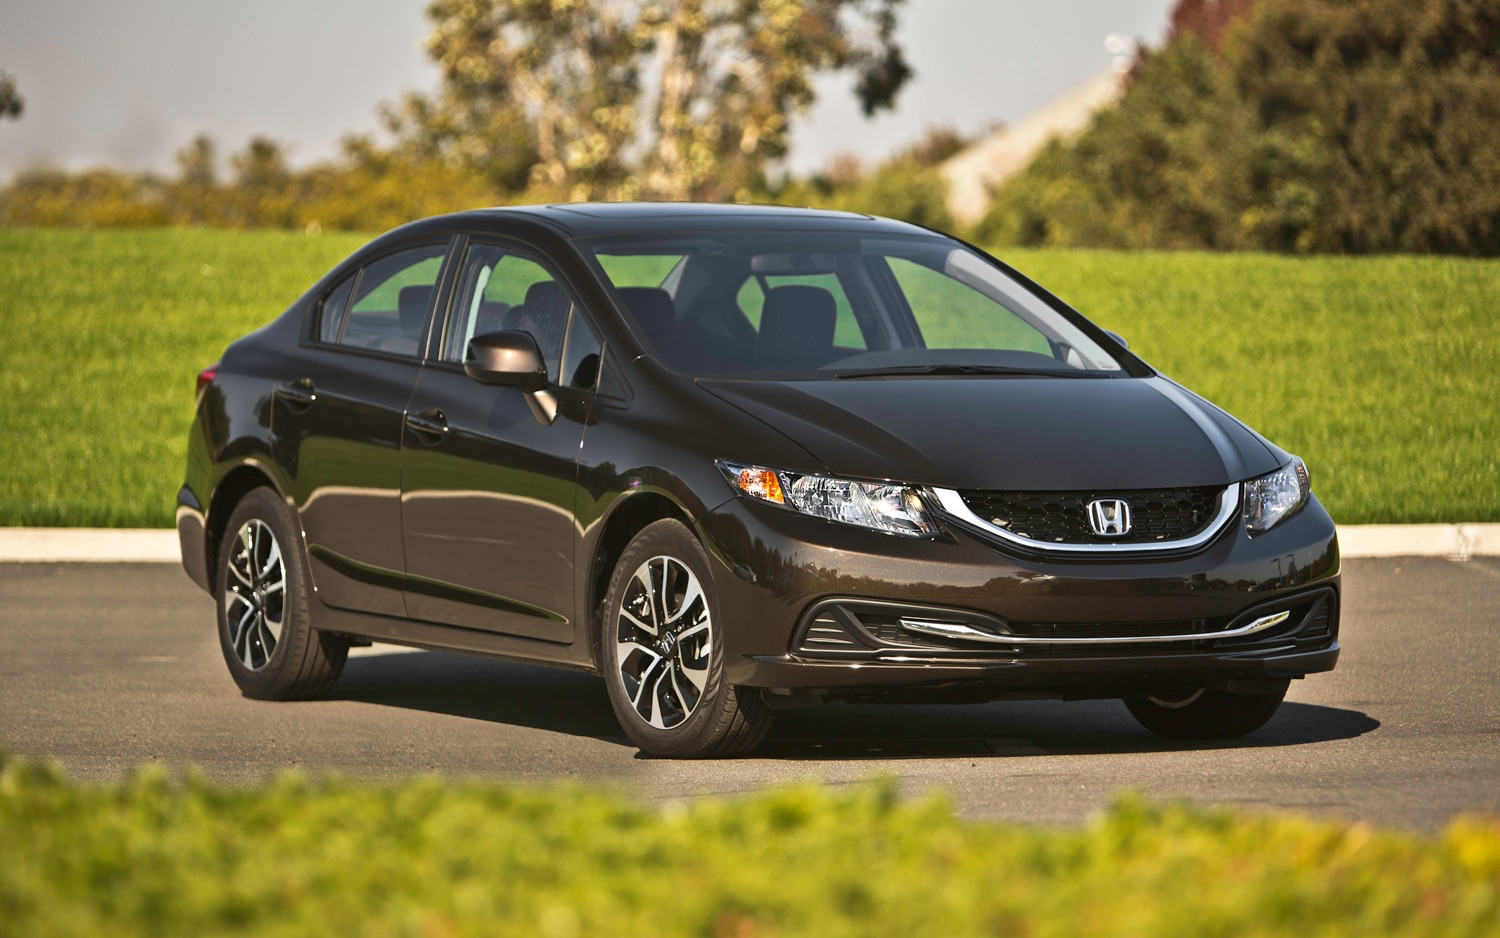 2013 Honda Civic Front Right View1